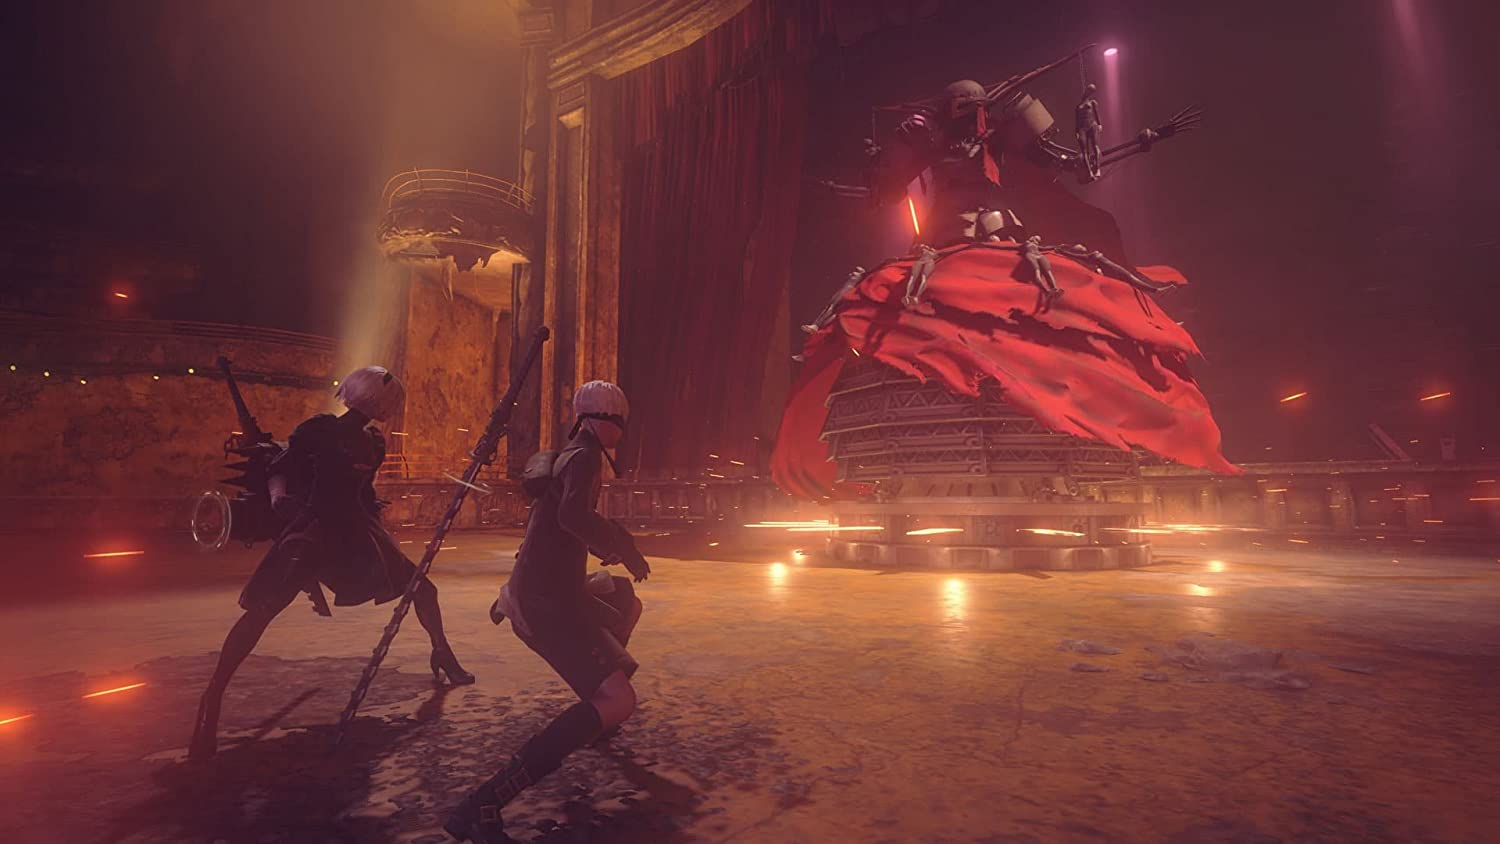 Koch Media NIER: Automata, PS4 - Juego (PS4, PlayStation 4, Acción / RPG, PlatinumGames, PG (Guía parental), Básico, Square Enix): Amazon.es: Videojuegos